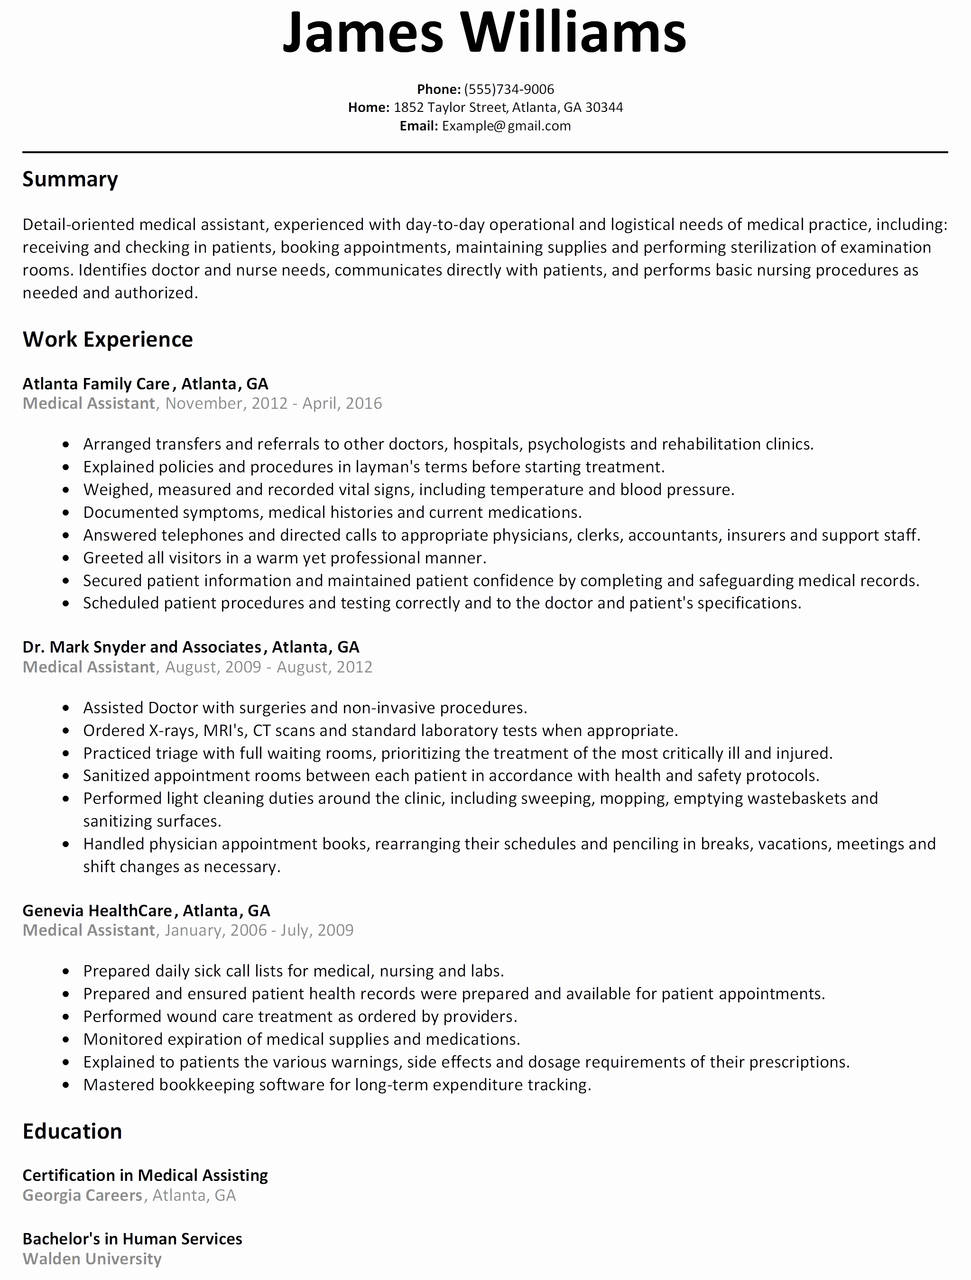 8 Ken Coleman Resume Template Samples | Resume Database Template